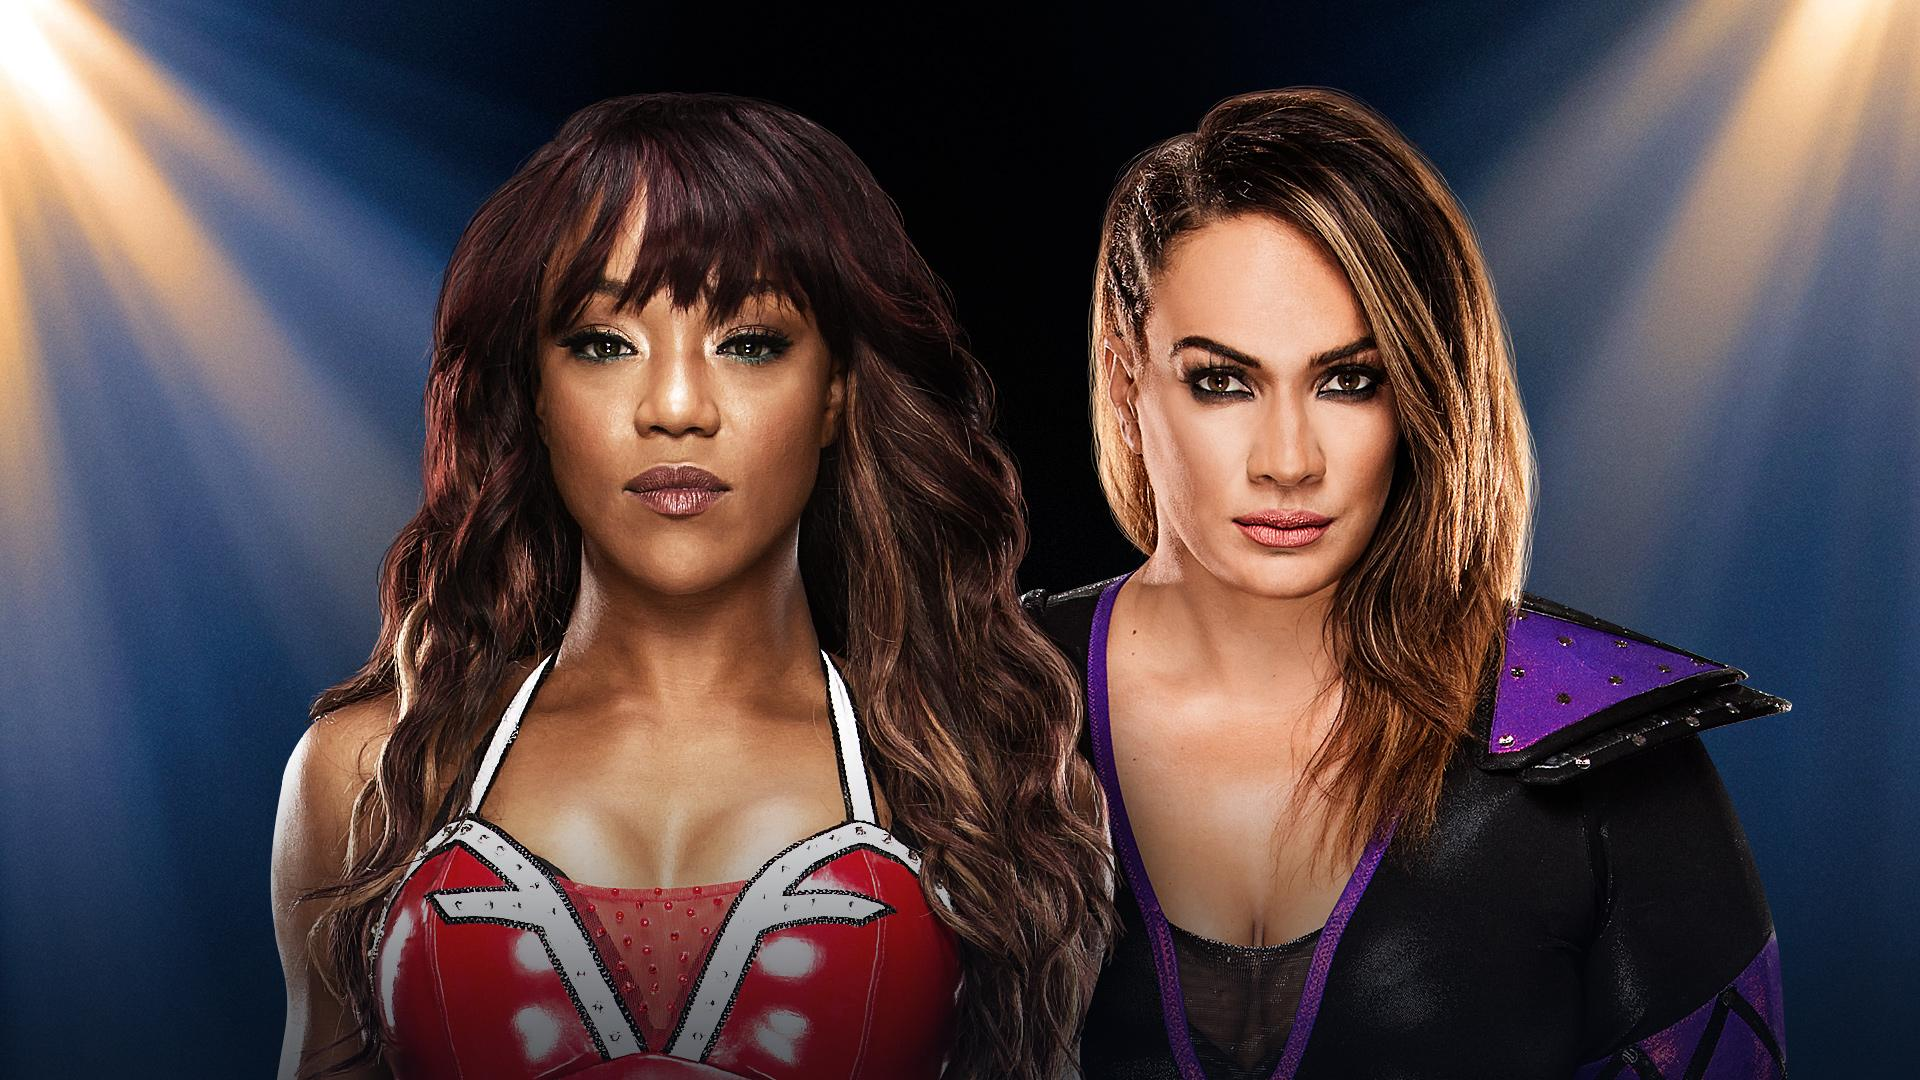 Alicia Fox vs Nia Jax